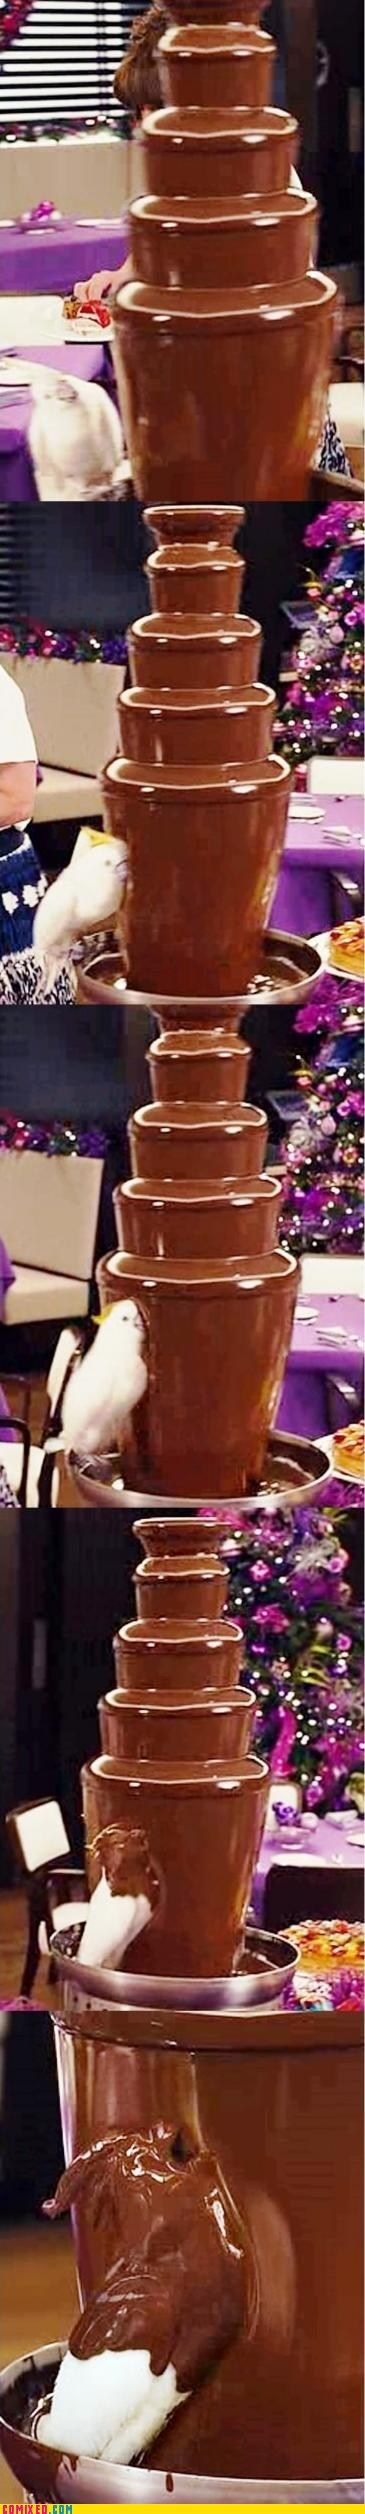 animals,best of week,bird,chocolate,chocolate fountain,funny,Memes,omg,pets